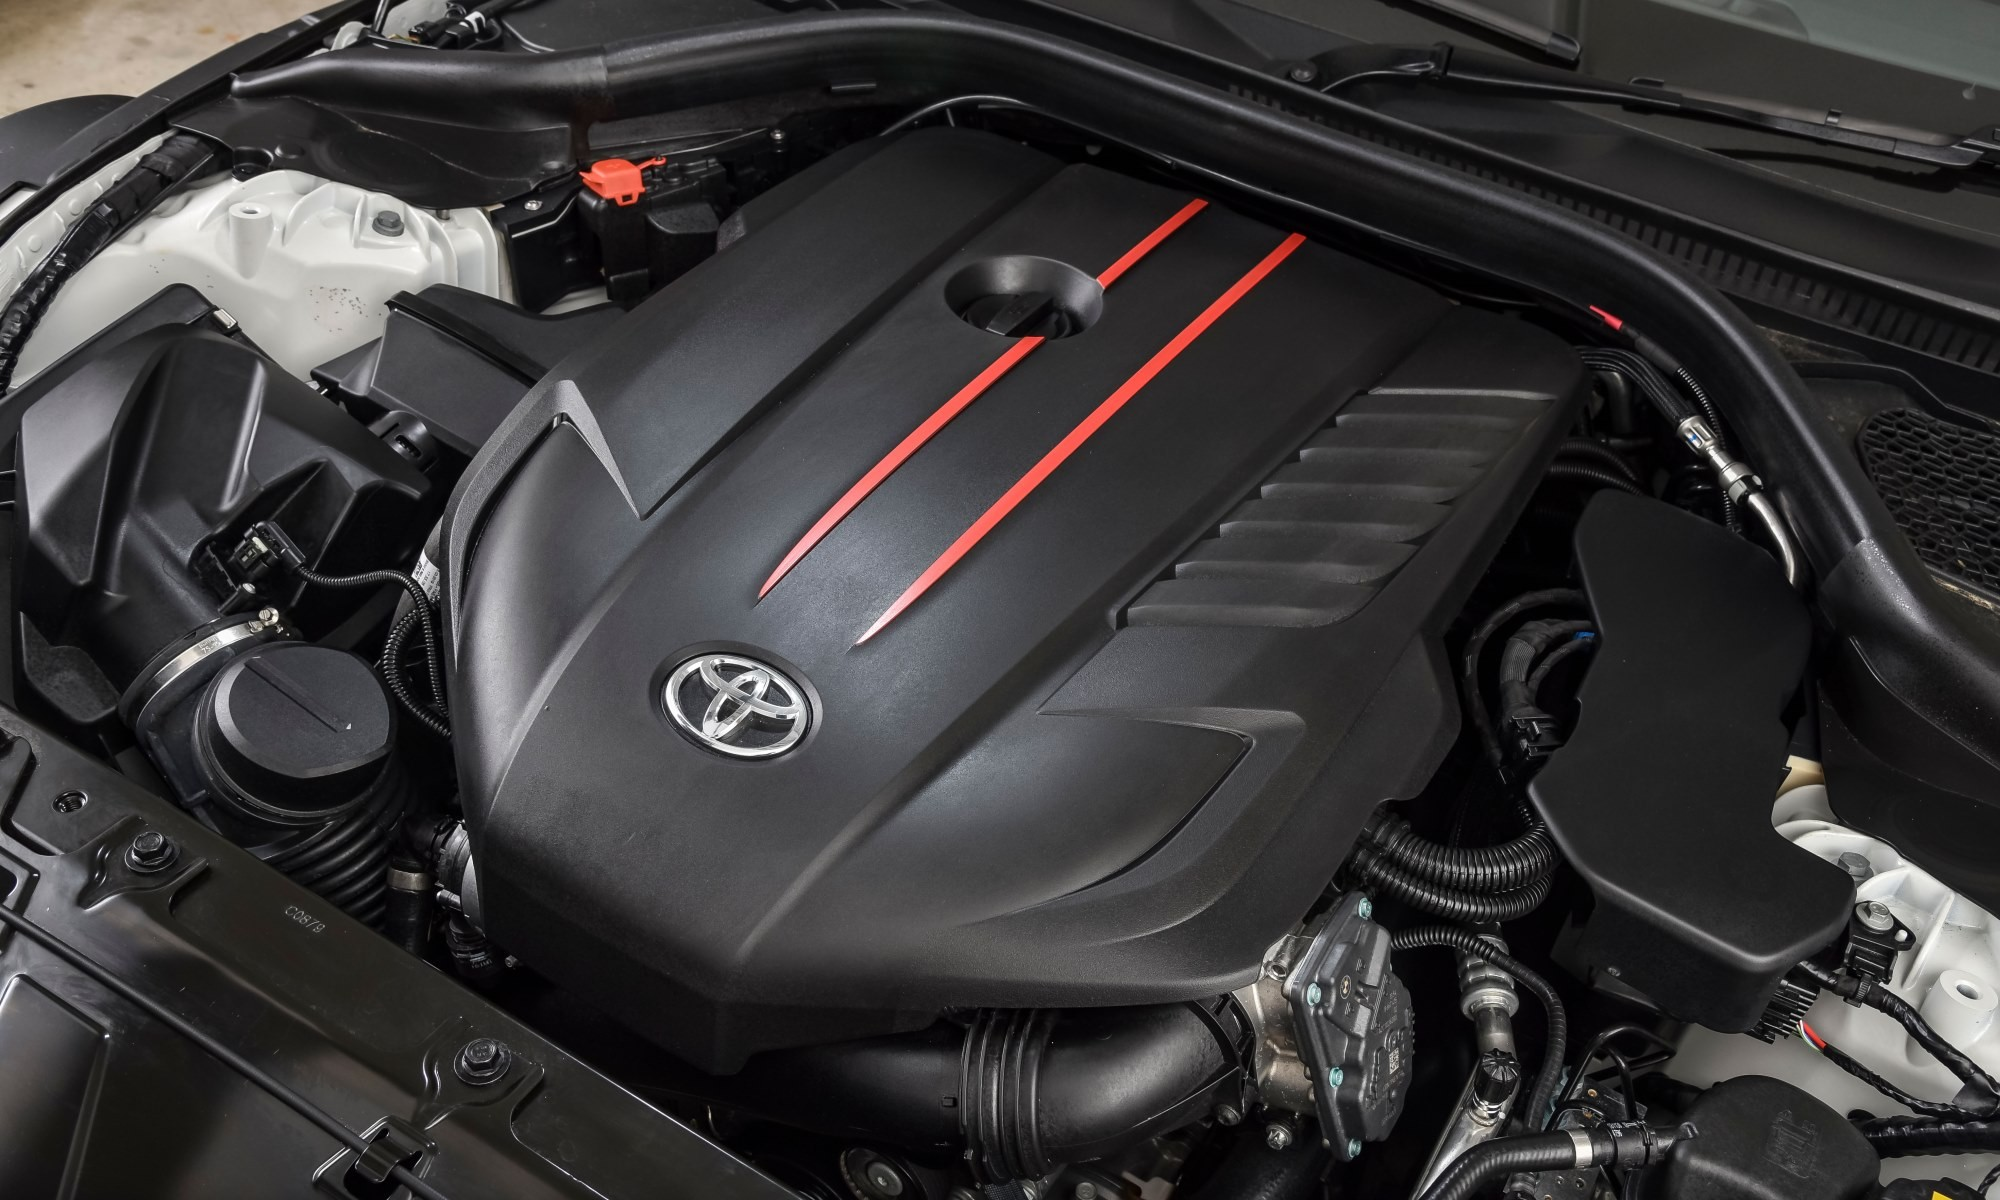 Toyota GR Supra engine